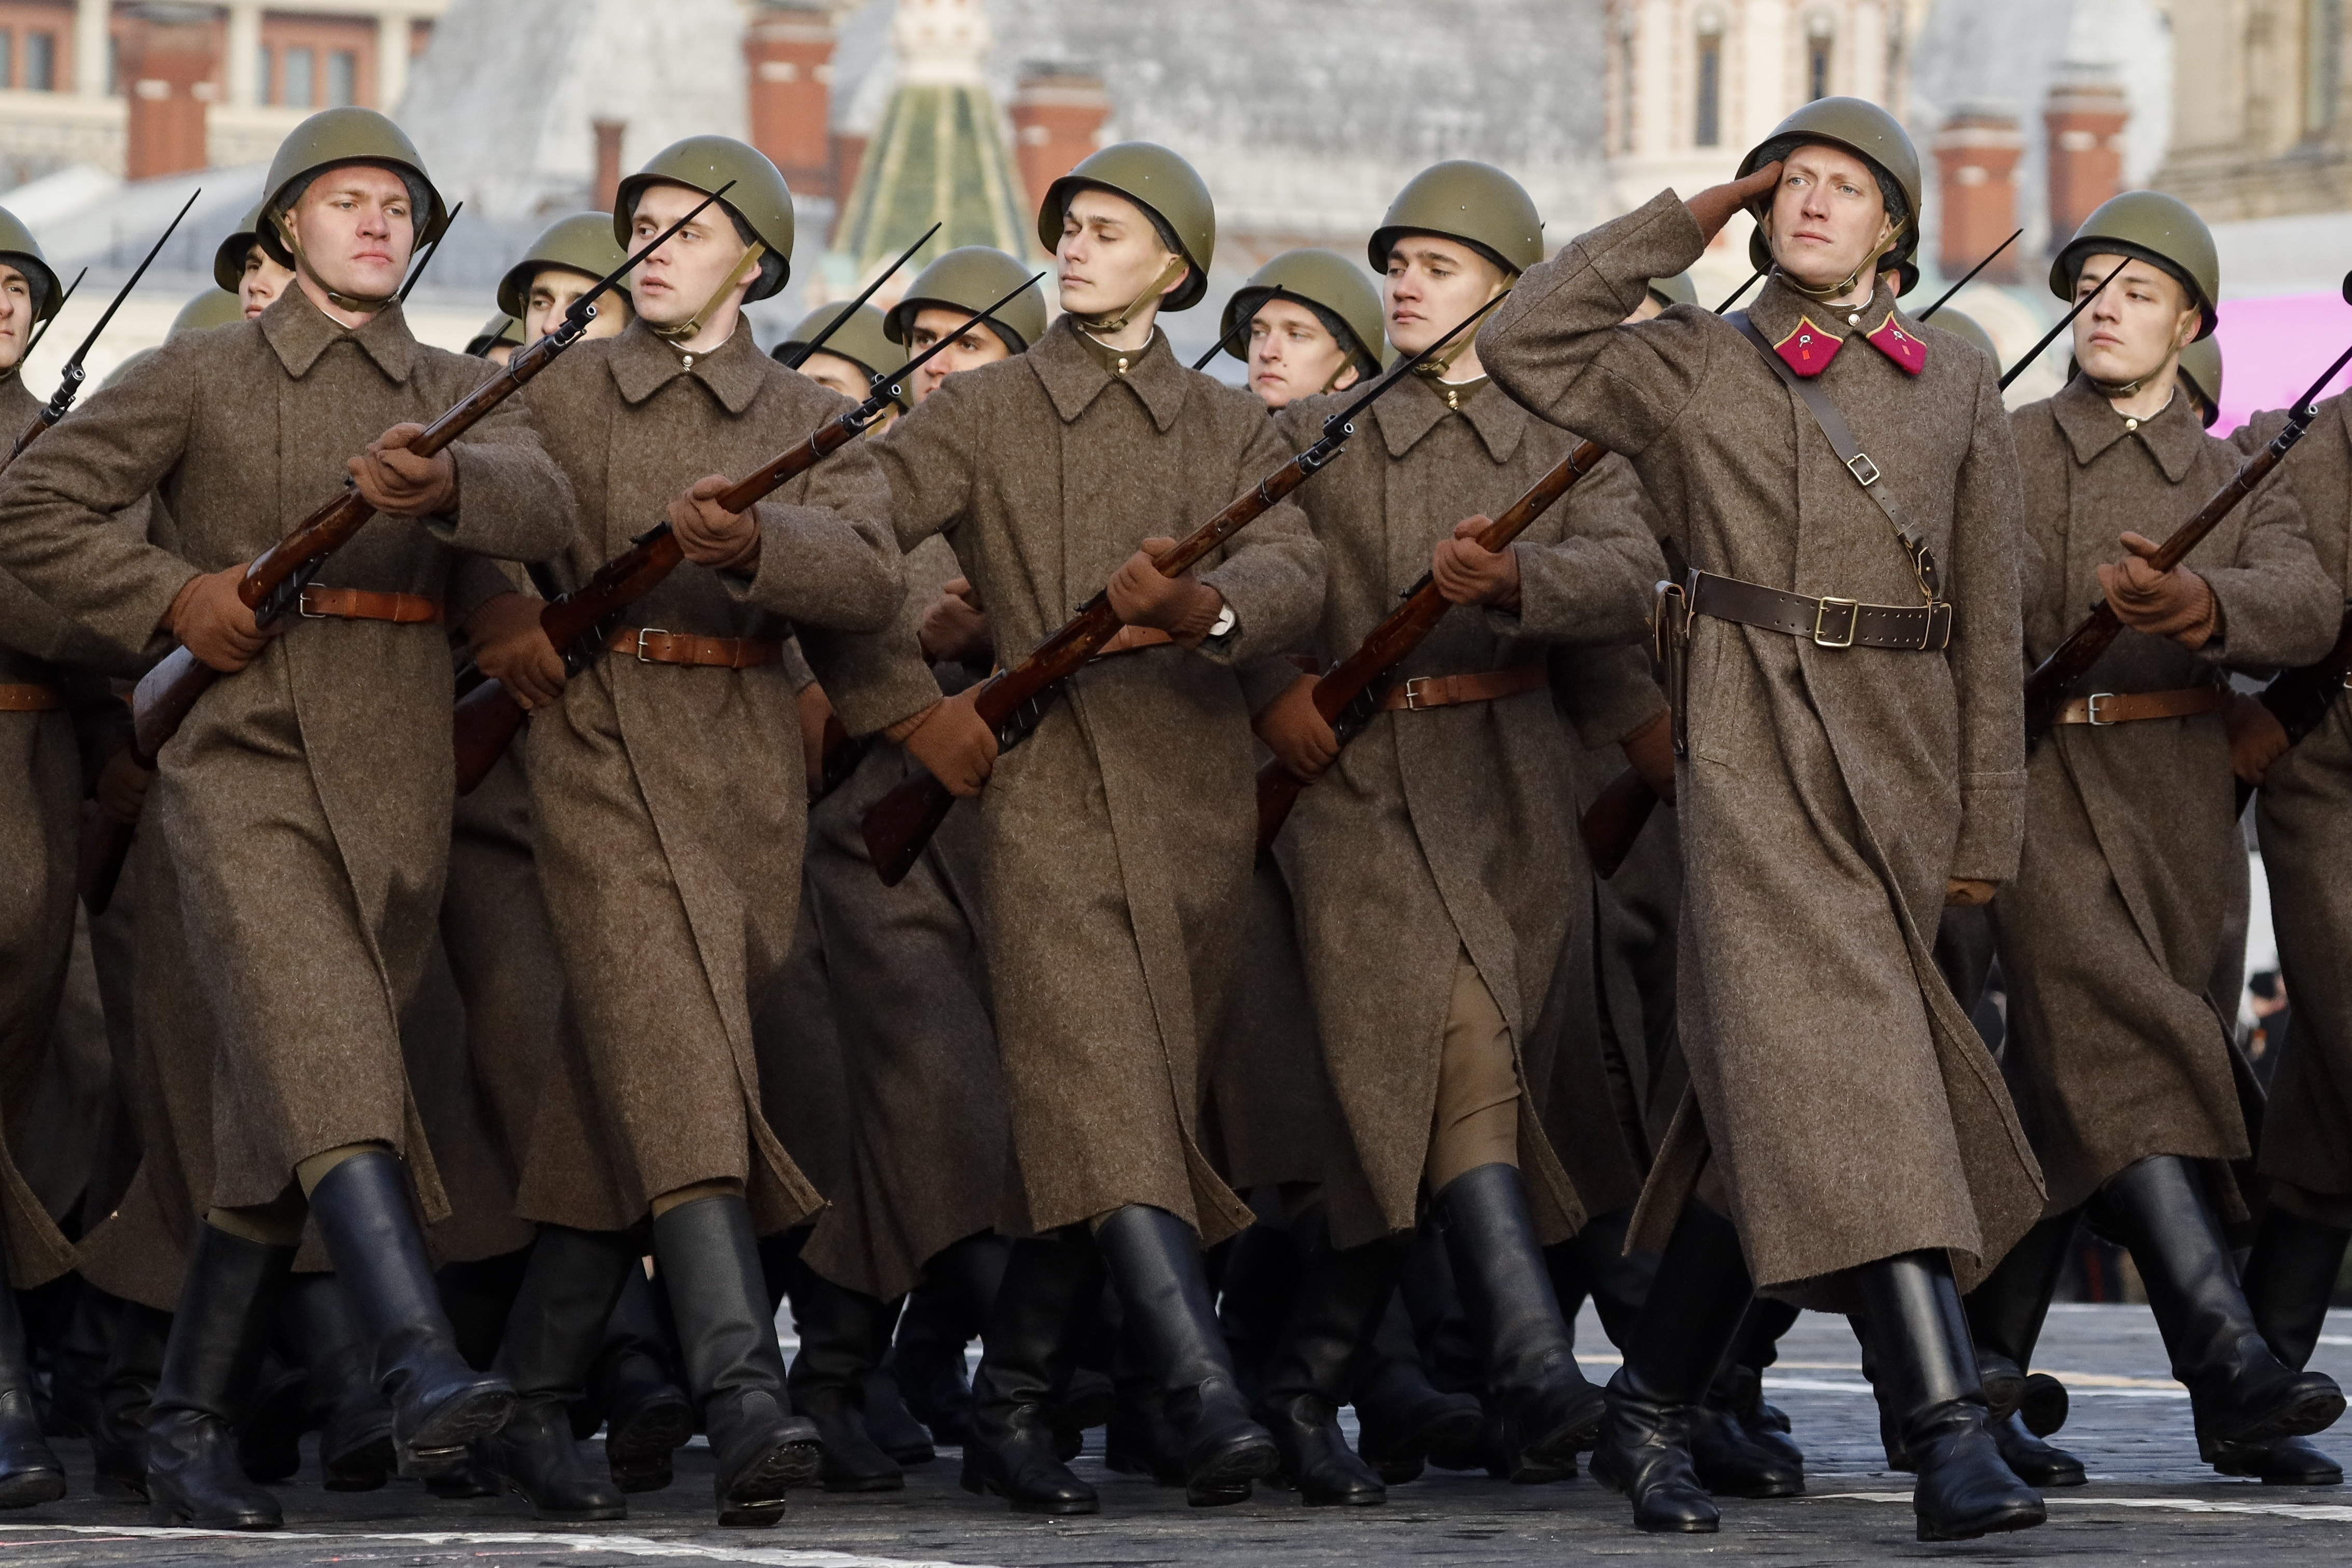 Russian soldiers dressed in Red Army World War II uniform march during the Nov. 7 parade in Red Square, in Moscow, Russia, Wednesday, Nov. 7, 2018. The event marked the 77th anniversary of a World War II historic parade in Red Square and honored the participants in the Nov. 7, 1941 parade who headed directly to the front lines to defend Moscow from the Nazi forces. (AP Photo/Alexander Zemlianichenko)